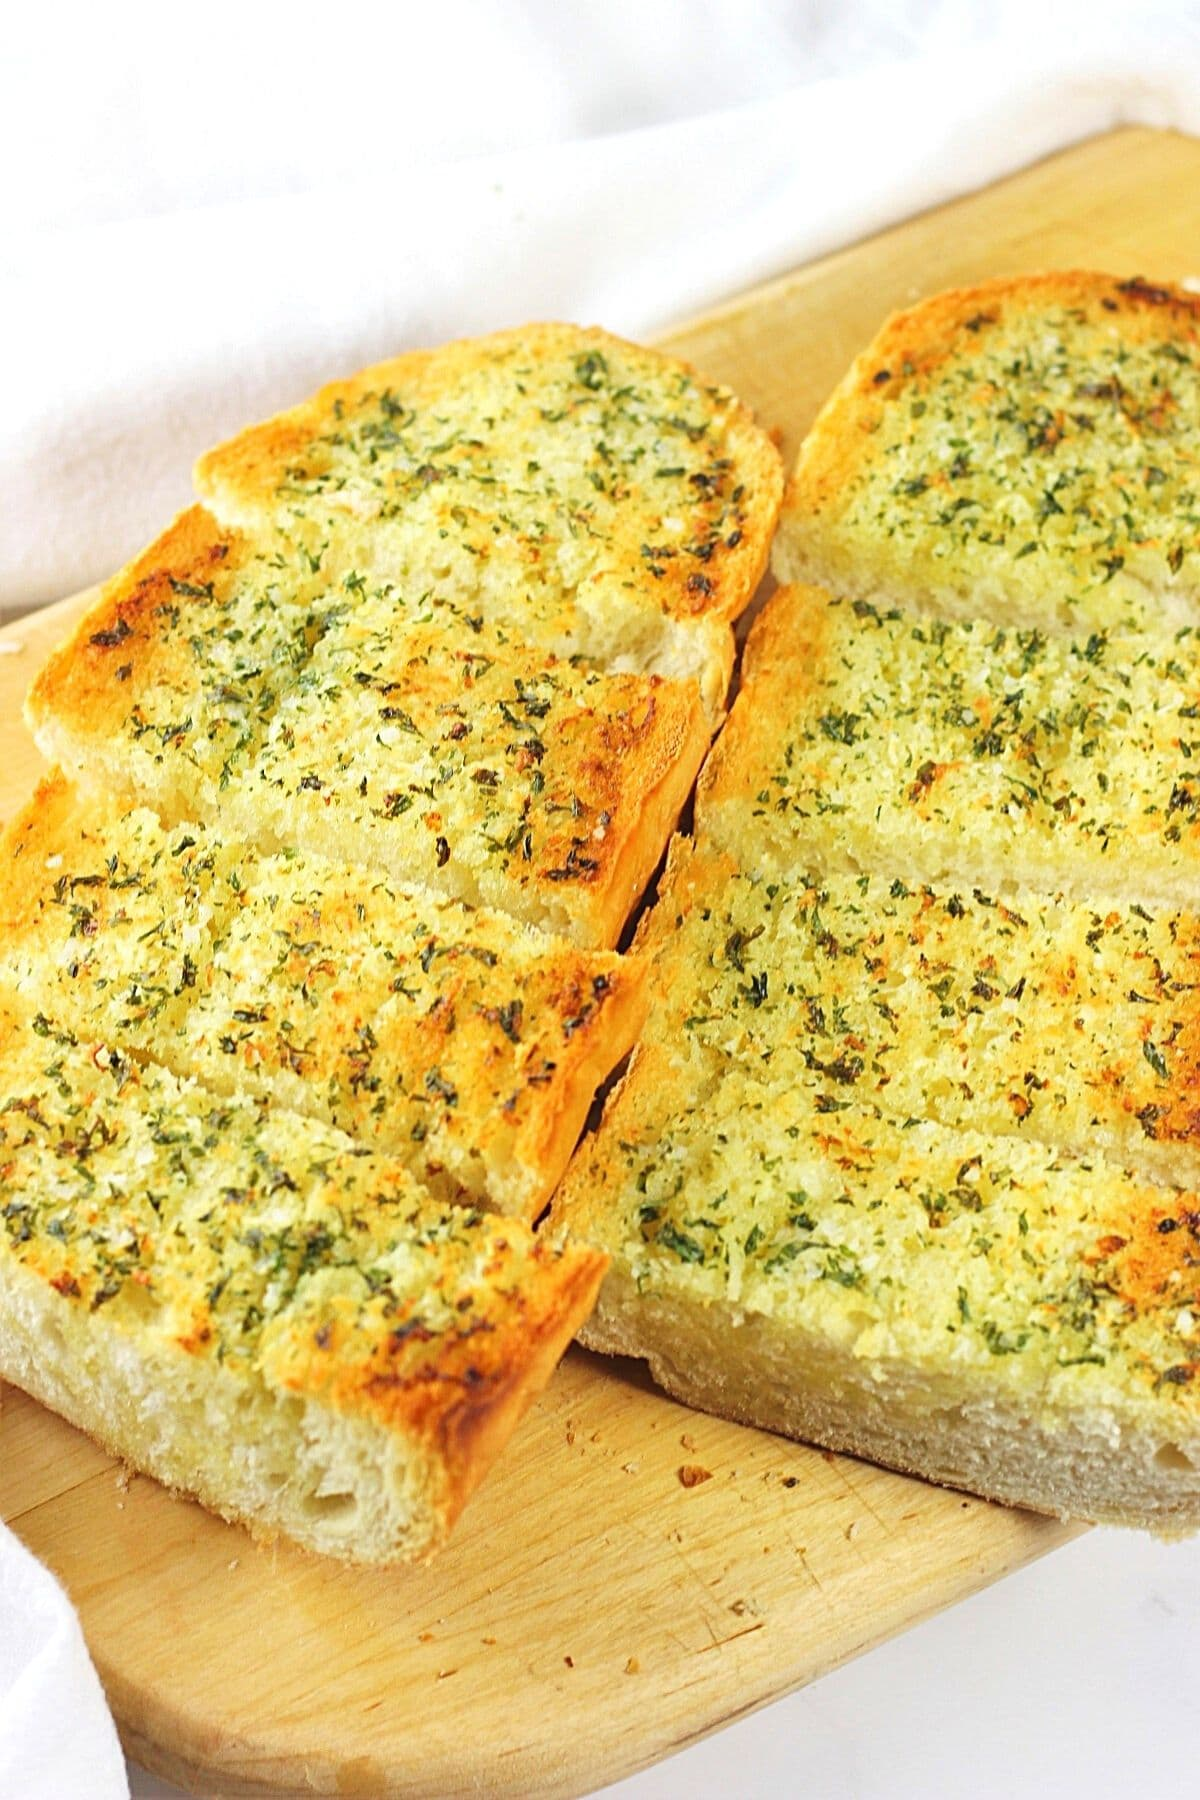 homemade garlic bread on a cutting board with a napkin on the side